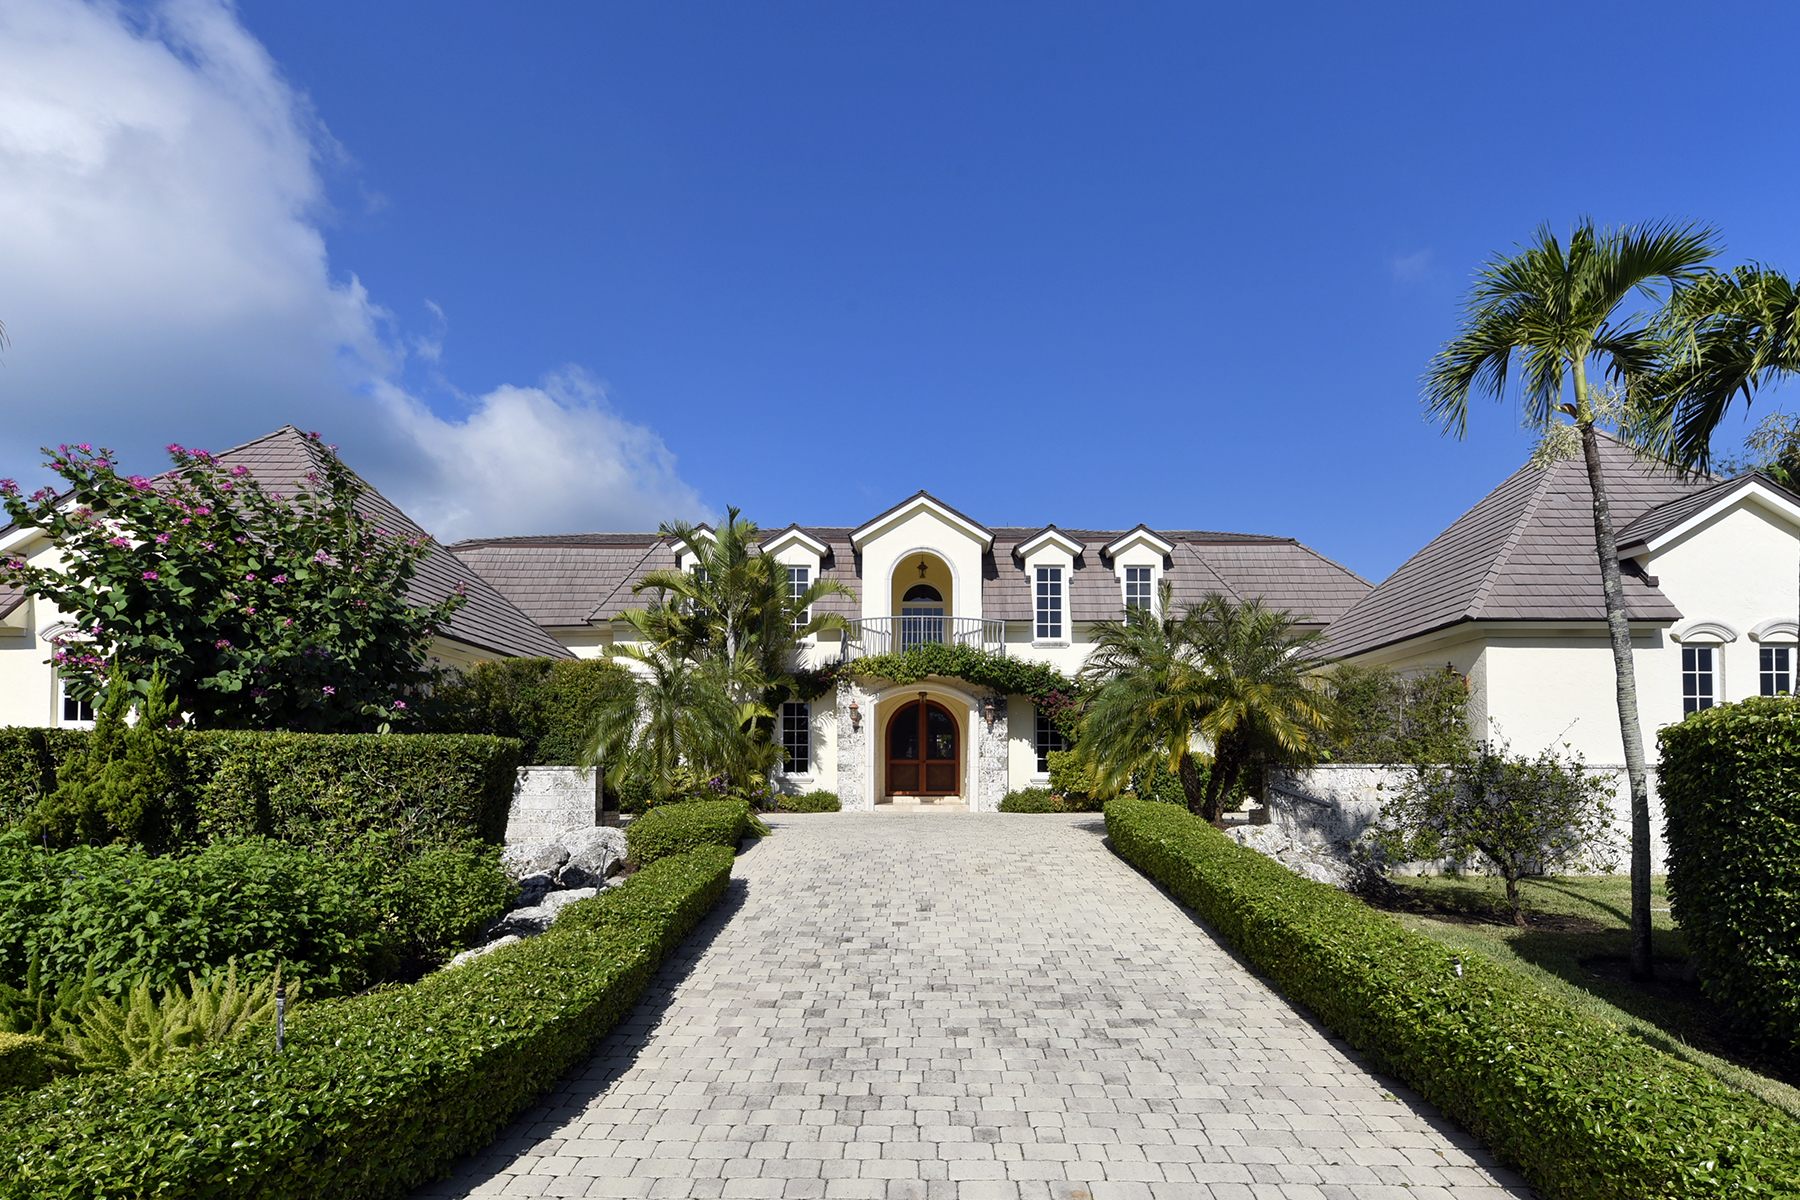 Single Family Home for Sale at Expansive Waterfront Home at Ocean Reef 25 Bay Ridge Road Key Largo, Florida, 33037 United States